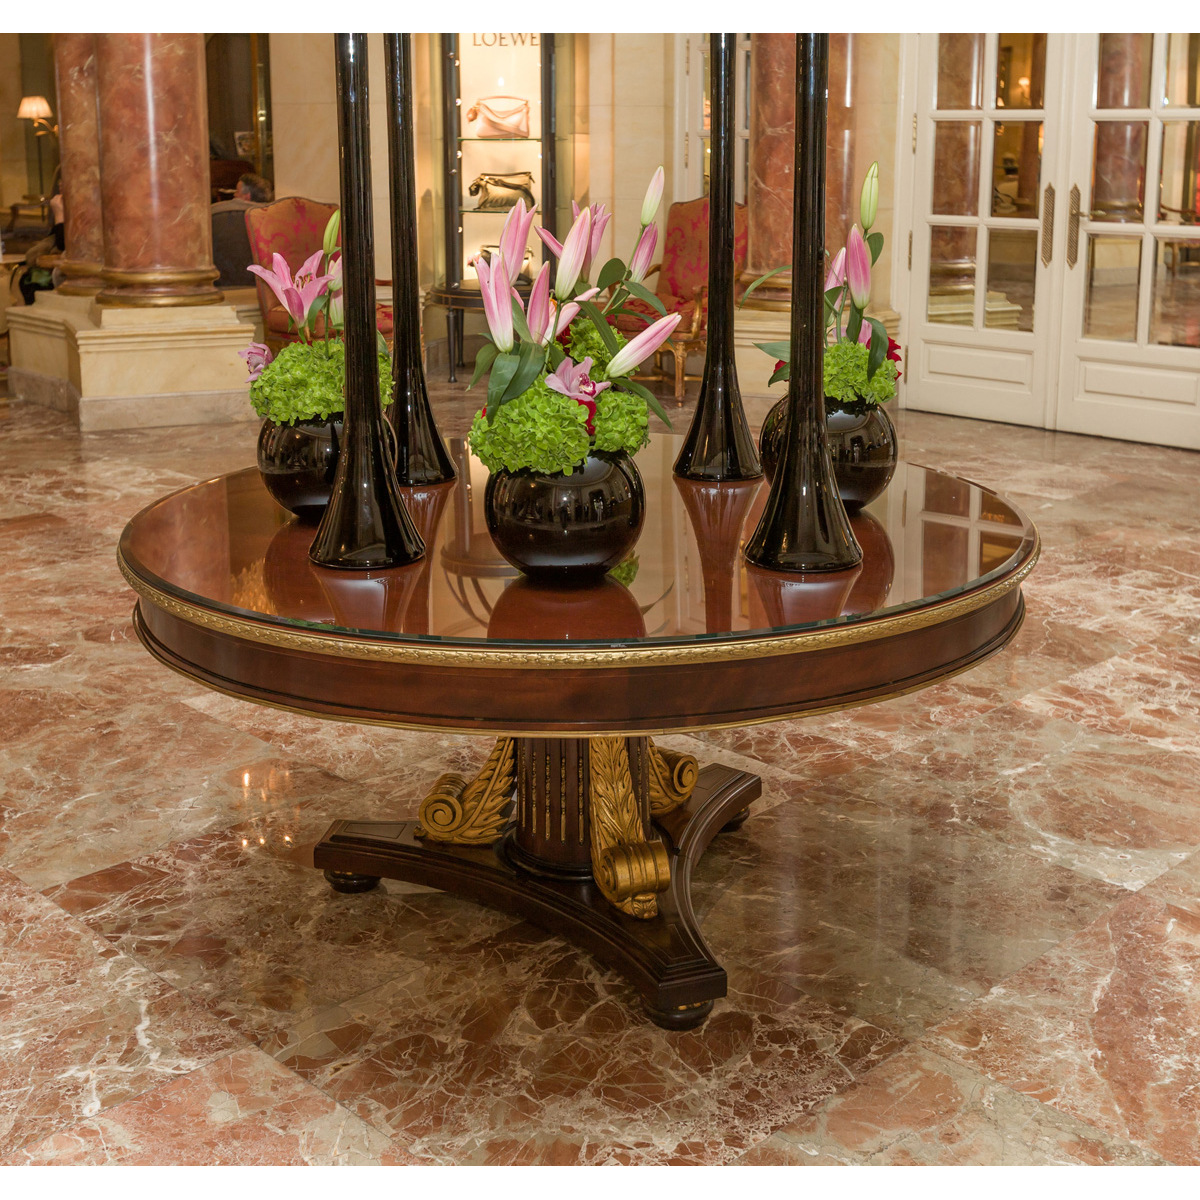 Table H Et H empire style round wooden table, h 75 x d 158 cm